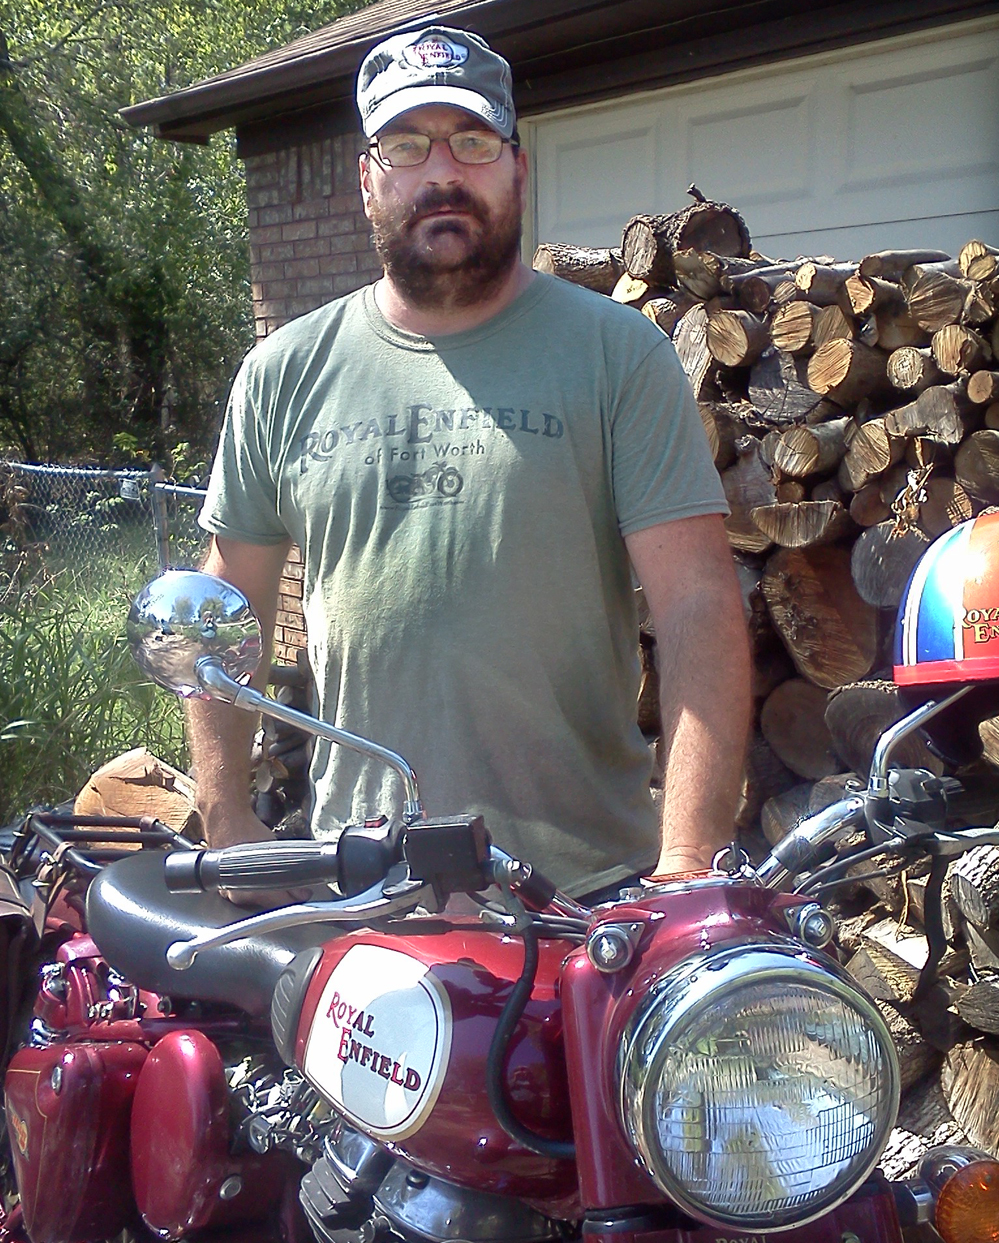 How Much Harley Sidecar Craigslist: Harley Oem Exhaust For Sale